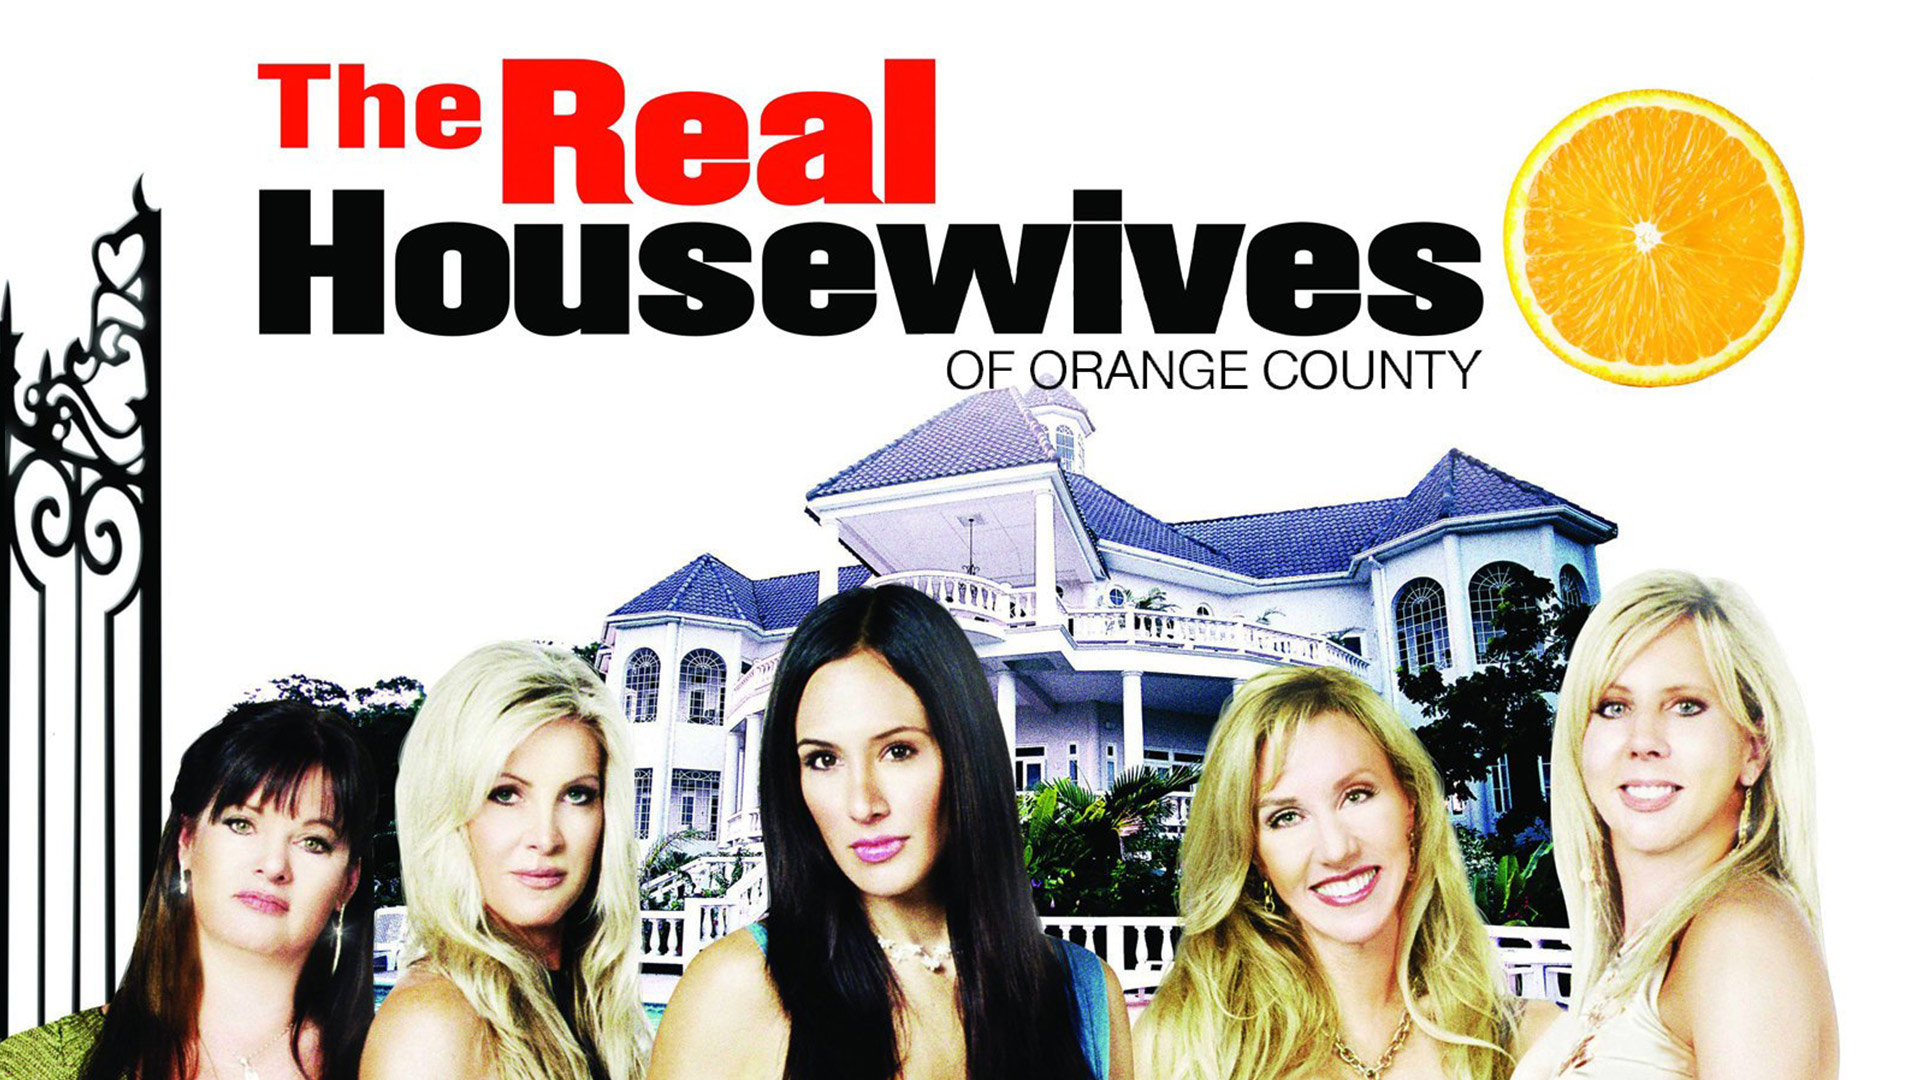 The Real Housewives of Orange County Season 1